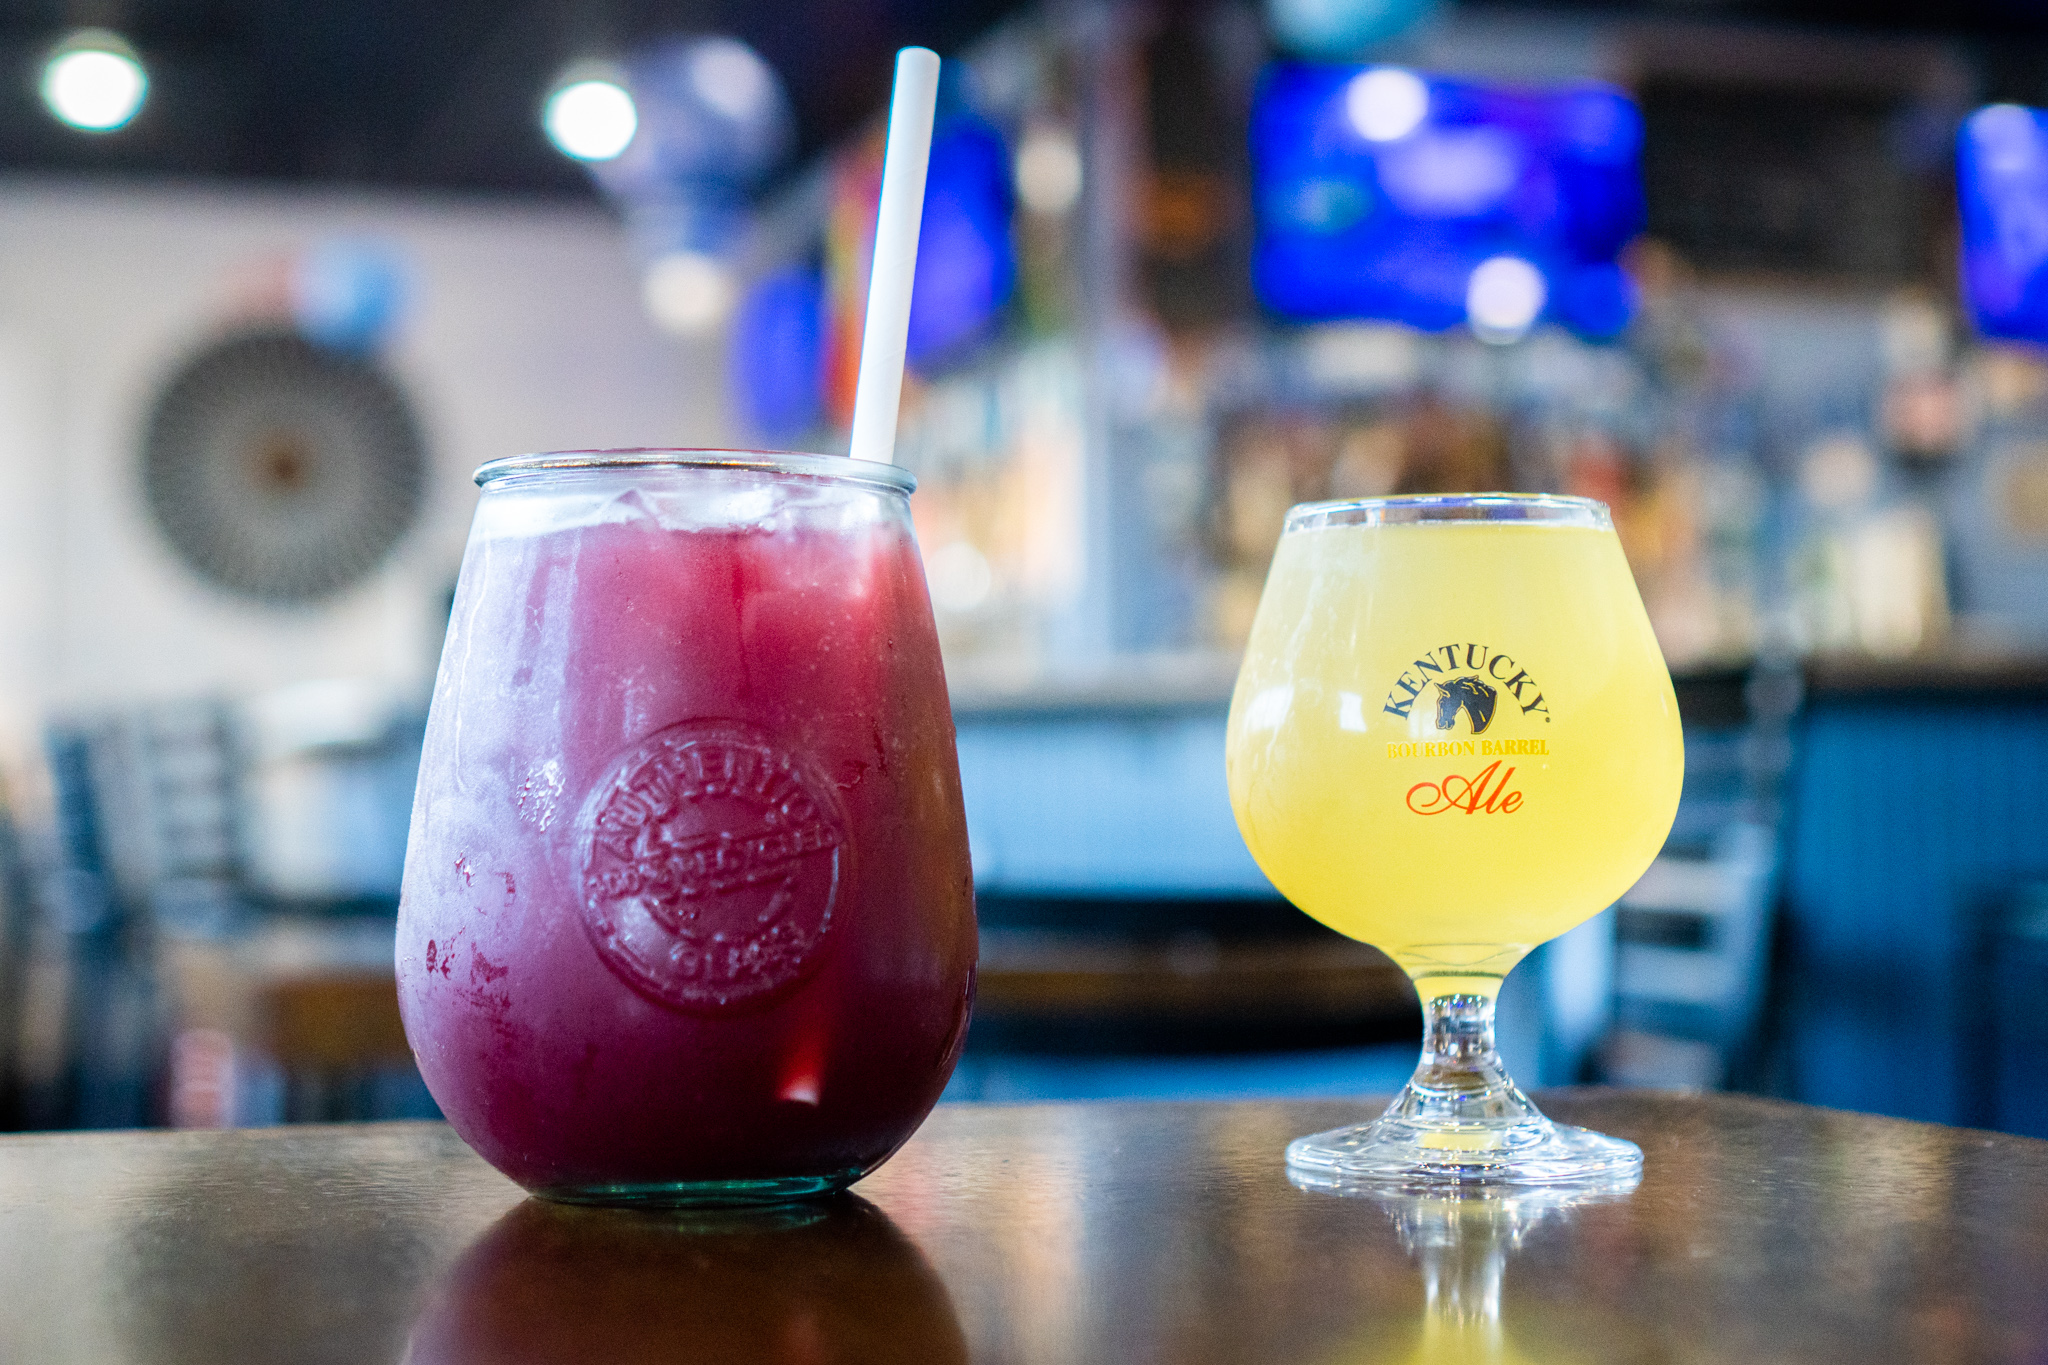 The Wheelhouse Sangria and Coco Loconut Beer